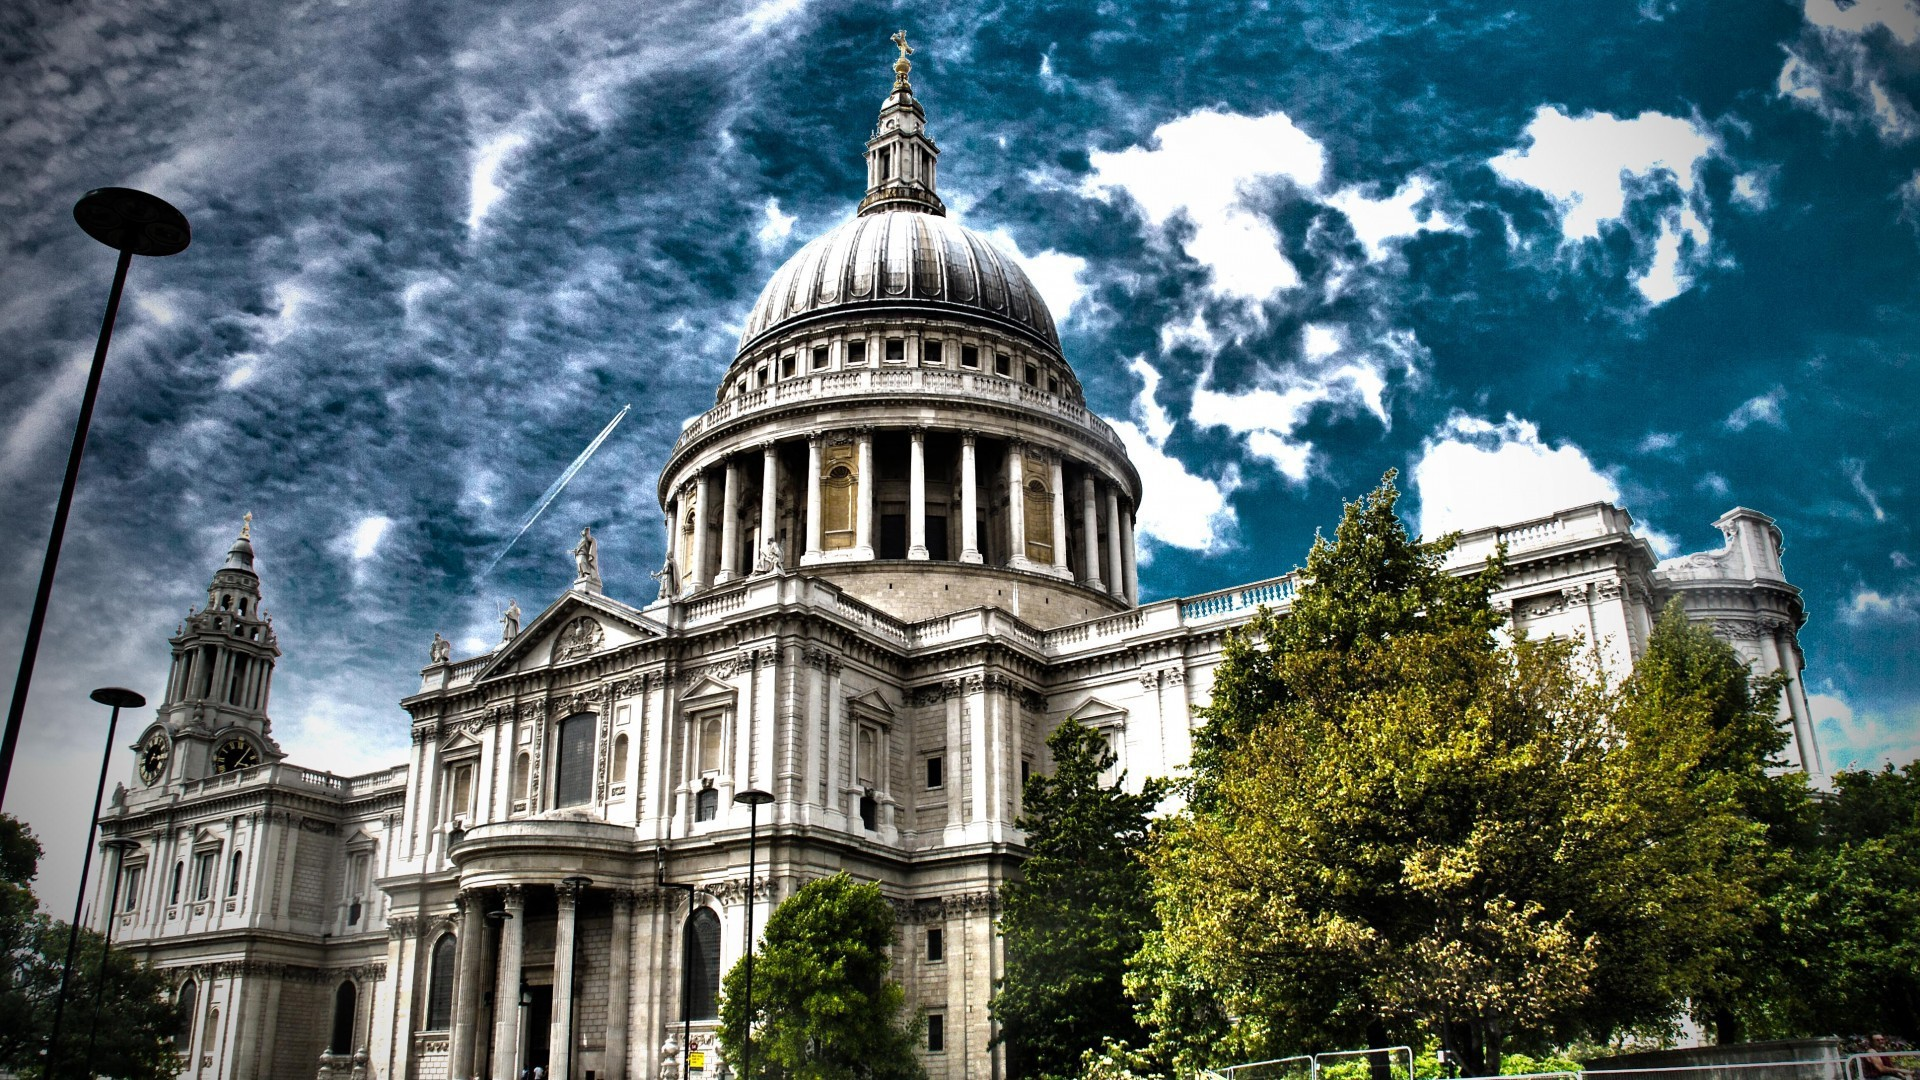 Saint Paul's Cathedral Wallpapers HD